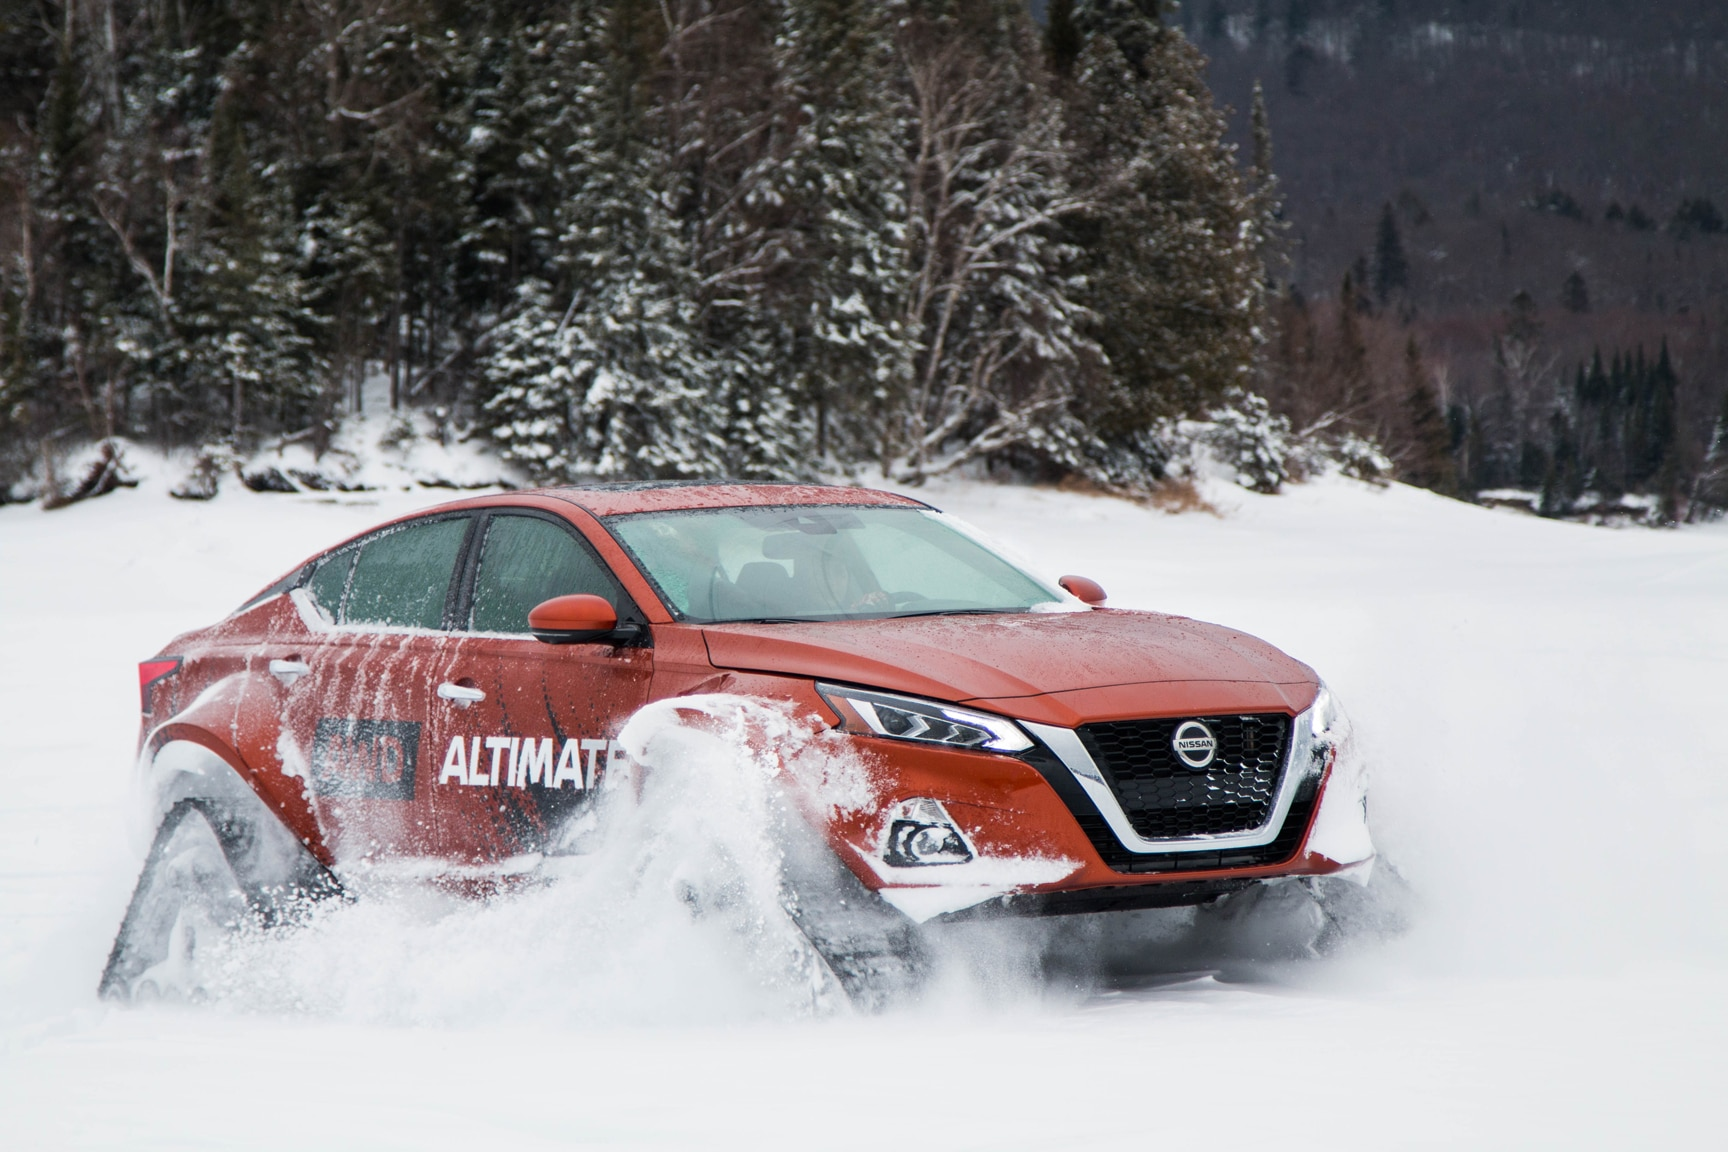 Nissan Put Snow Tracks on Another Thing: The Altima